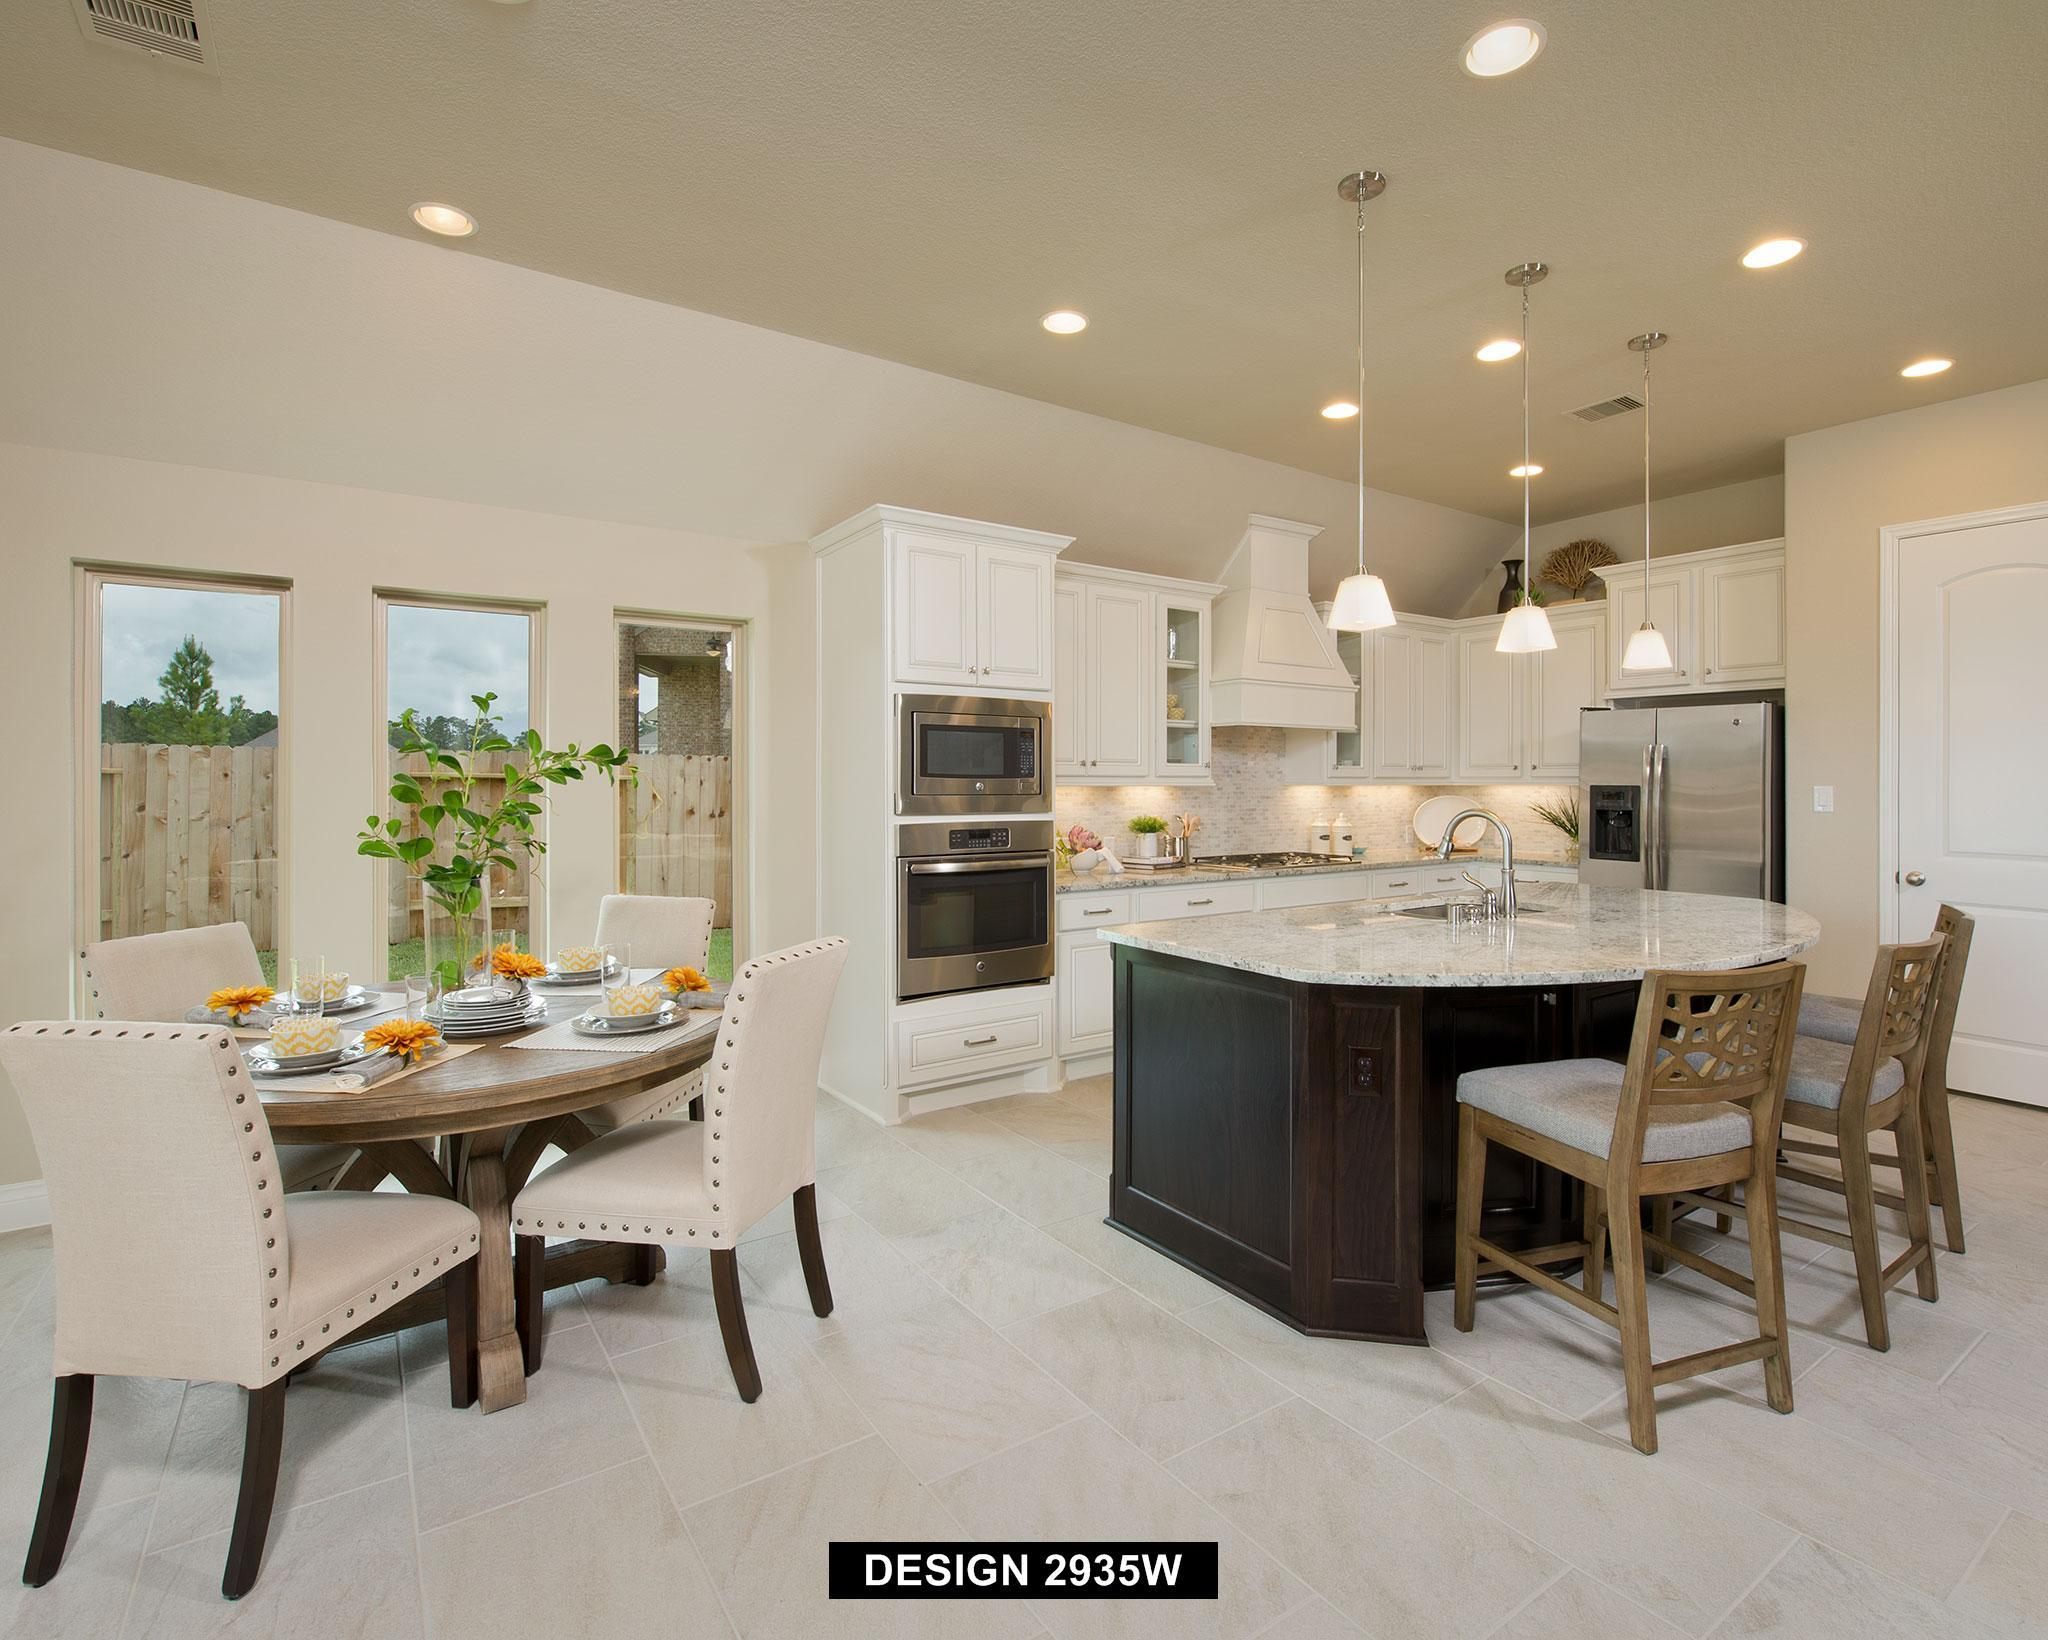 Kitchen featured in the 2935W By Perry Homes in Houston, TX